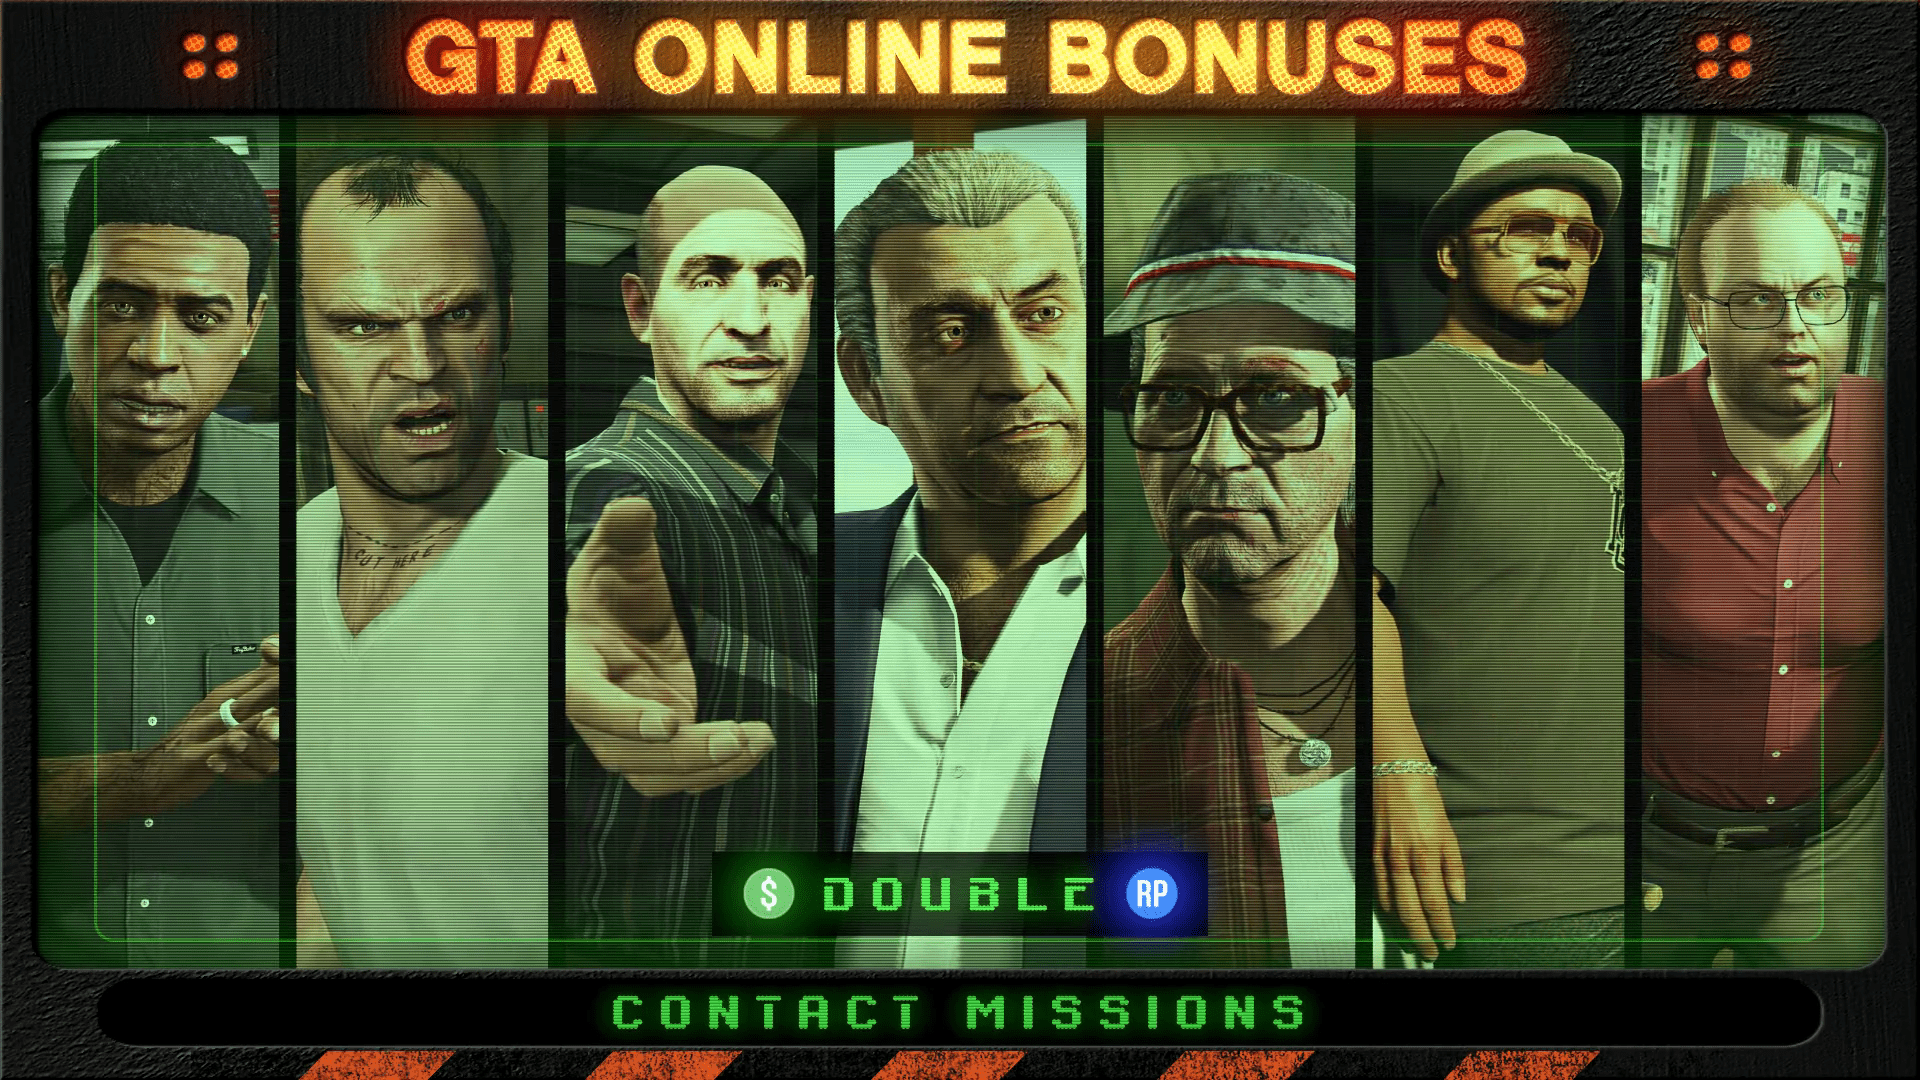 GTA Online: Double Rewards on Contact Missions & more